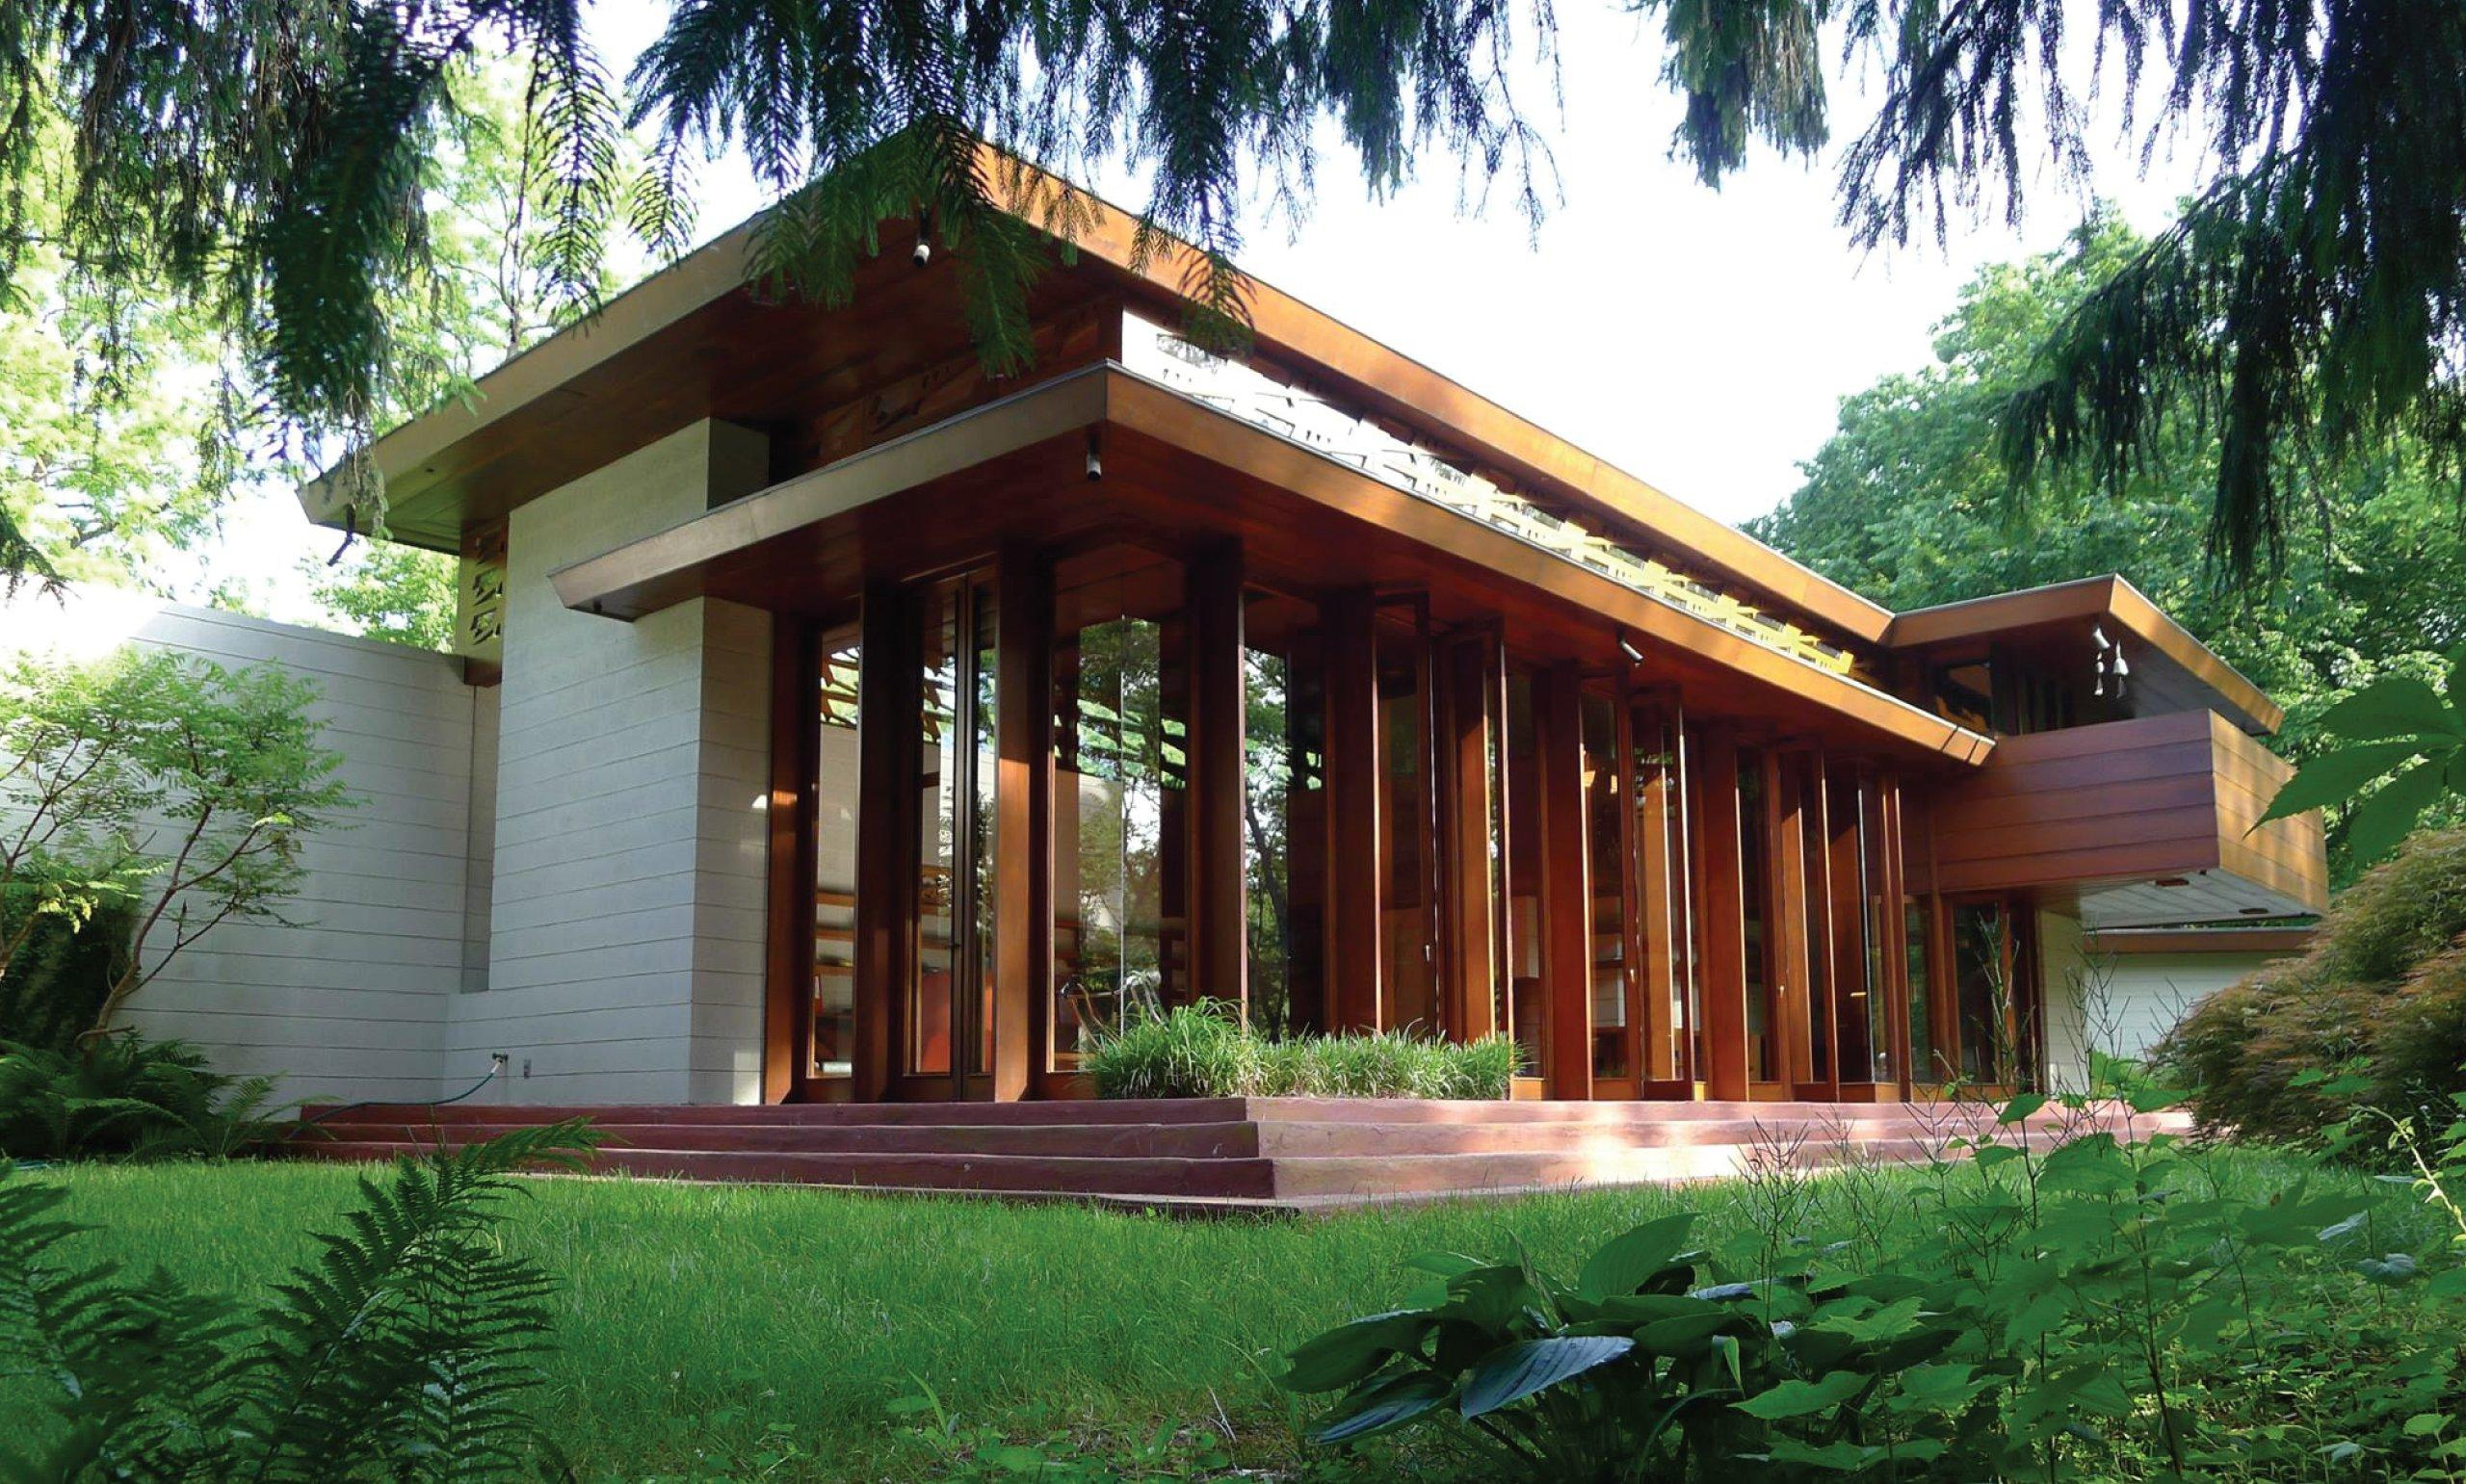 Relocated Frank Lloyd Wright house gets November opening